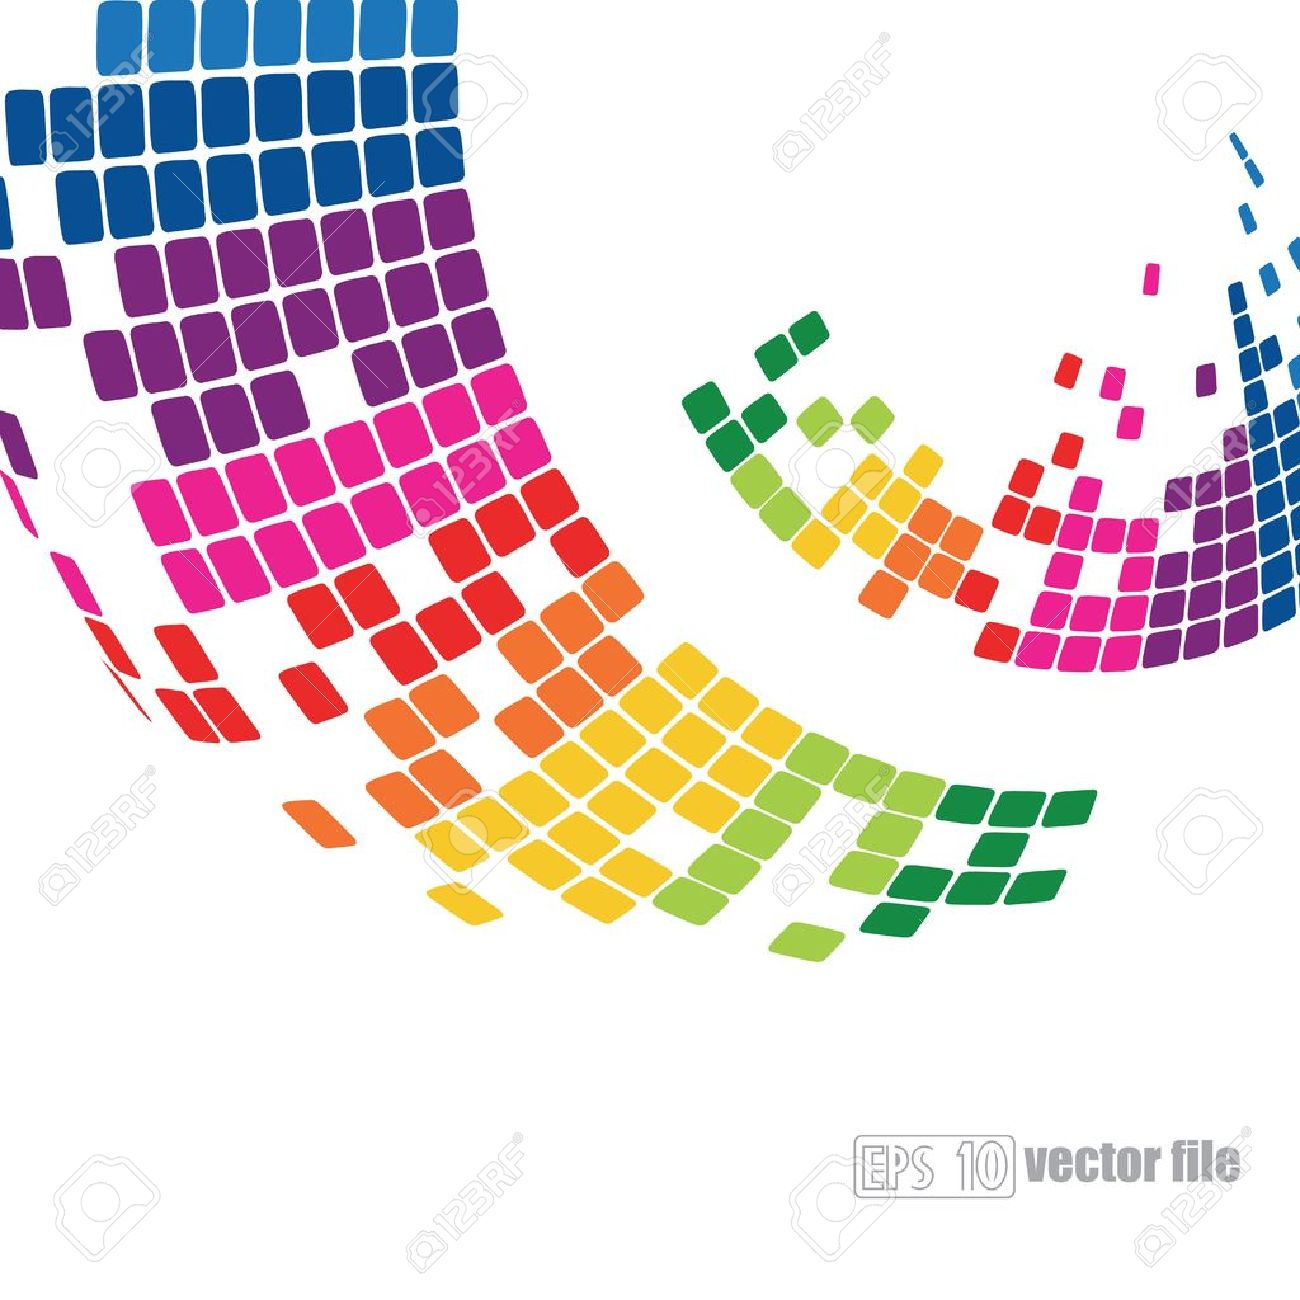 61,906 Pixel Art Stock Vector Illustration And Royalty Free Pixel.